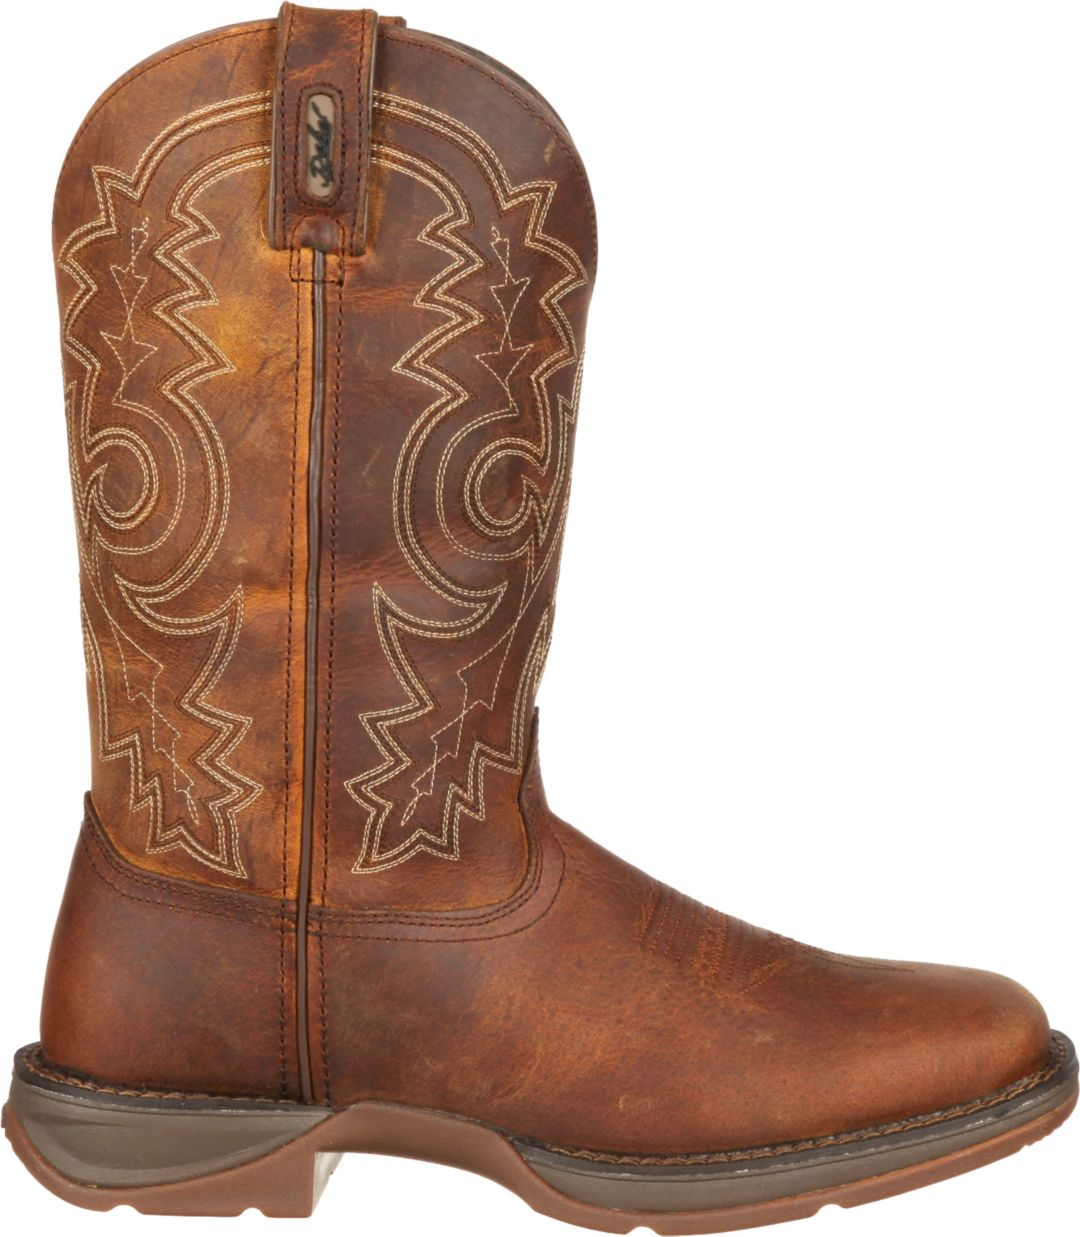 a3319bf7358 Durango Men's Rebel Pull-On Steel Toe Work Boots